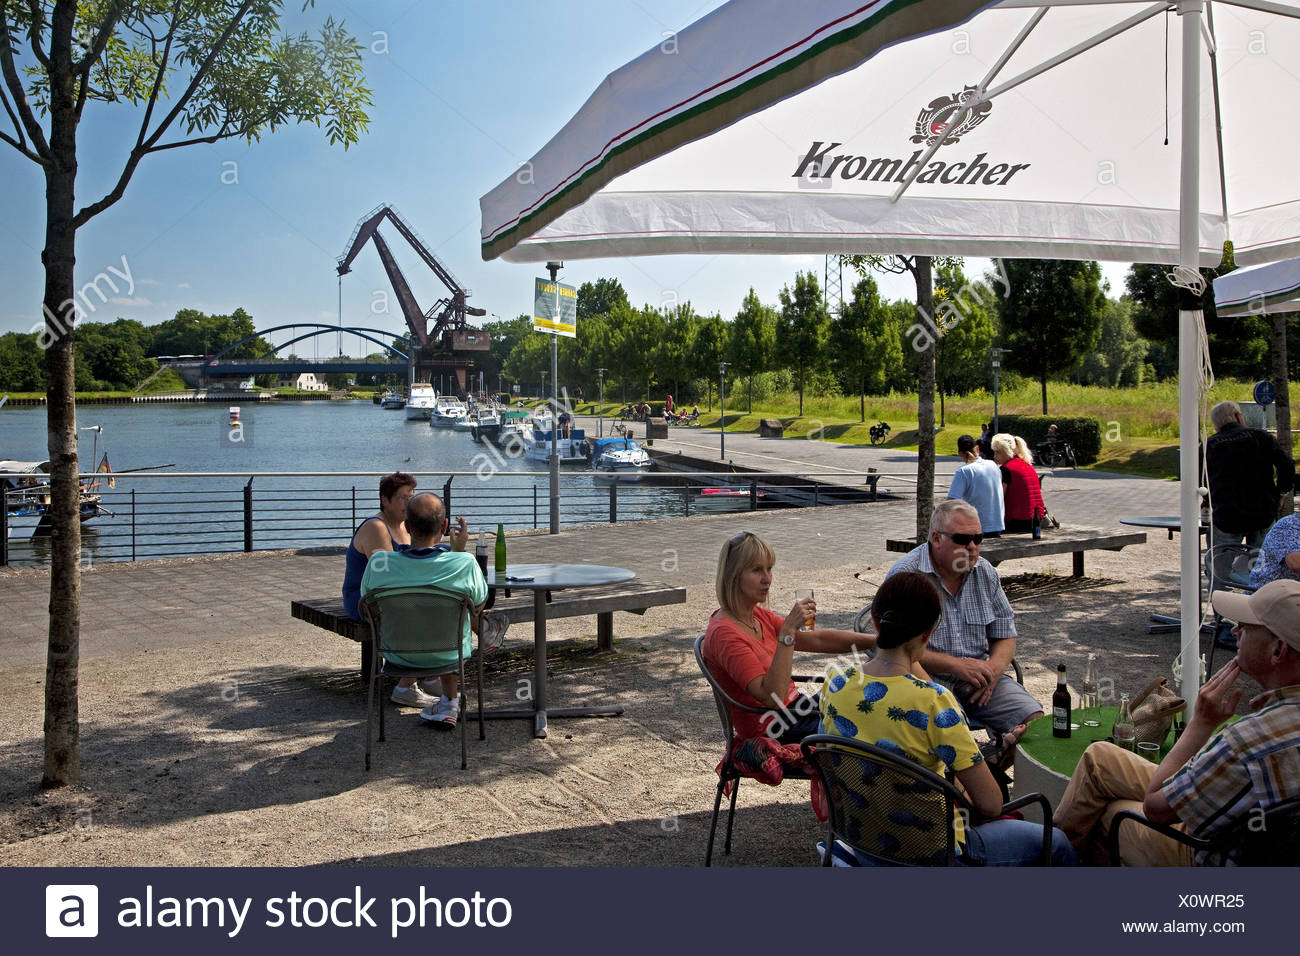 Prussia harbor, Lunen, Germany - Stock Image